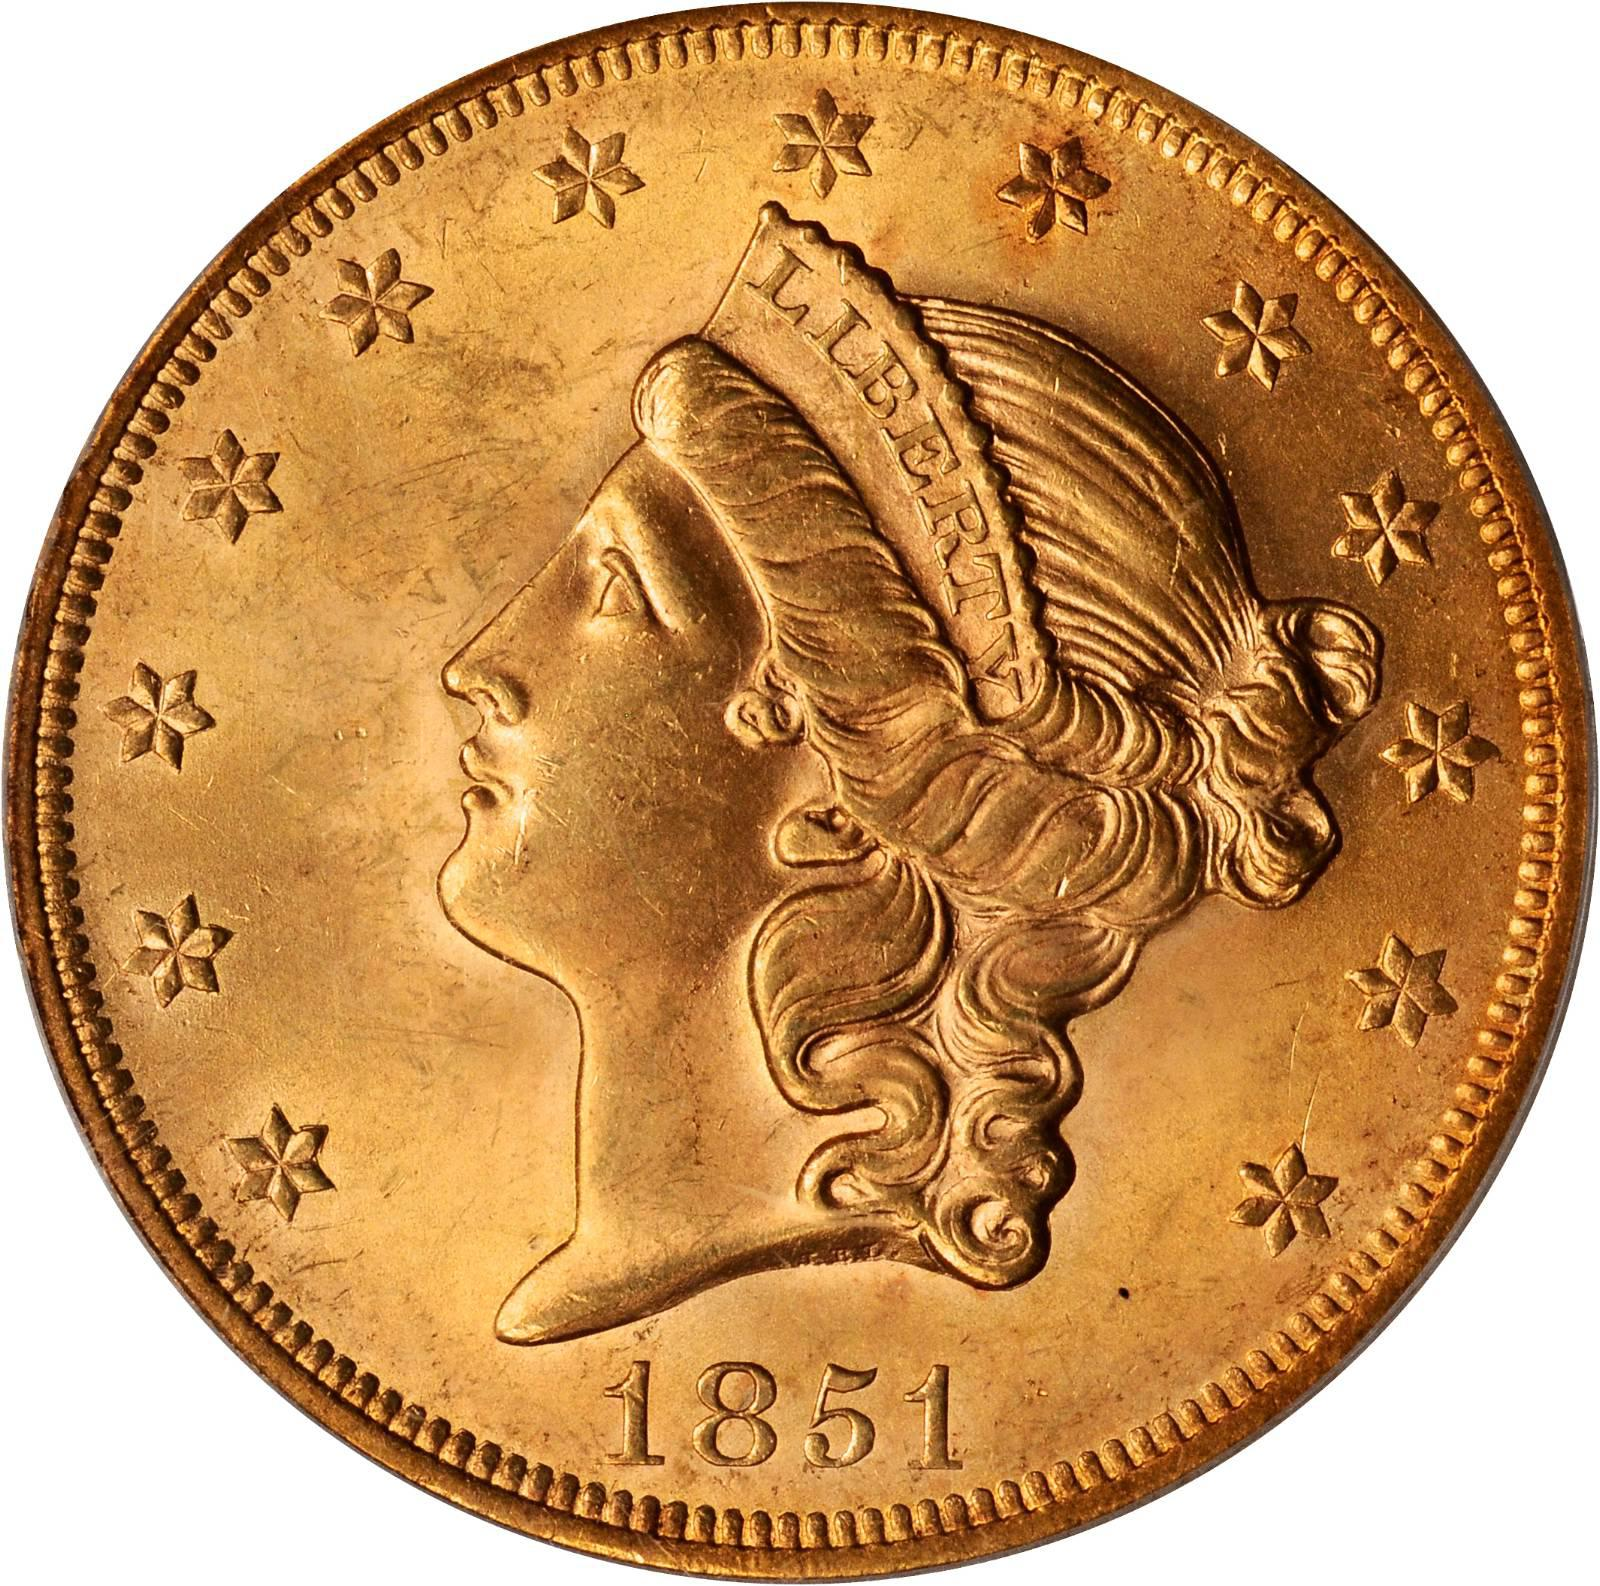 California Gold Coins Value July 2020